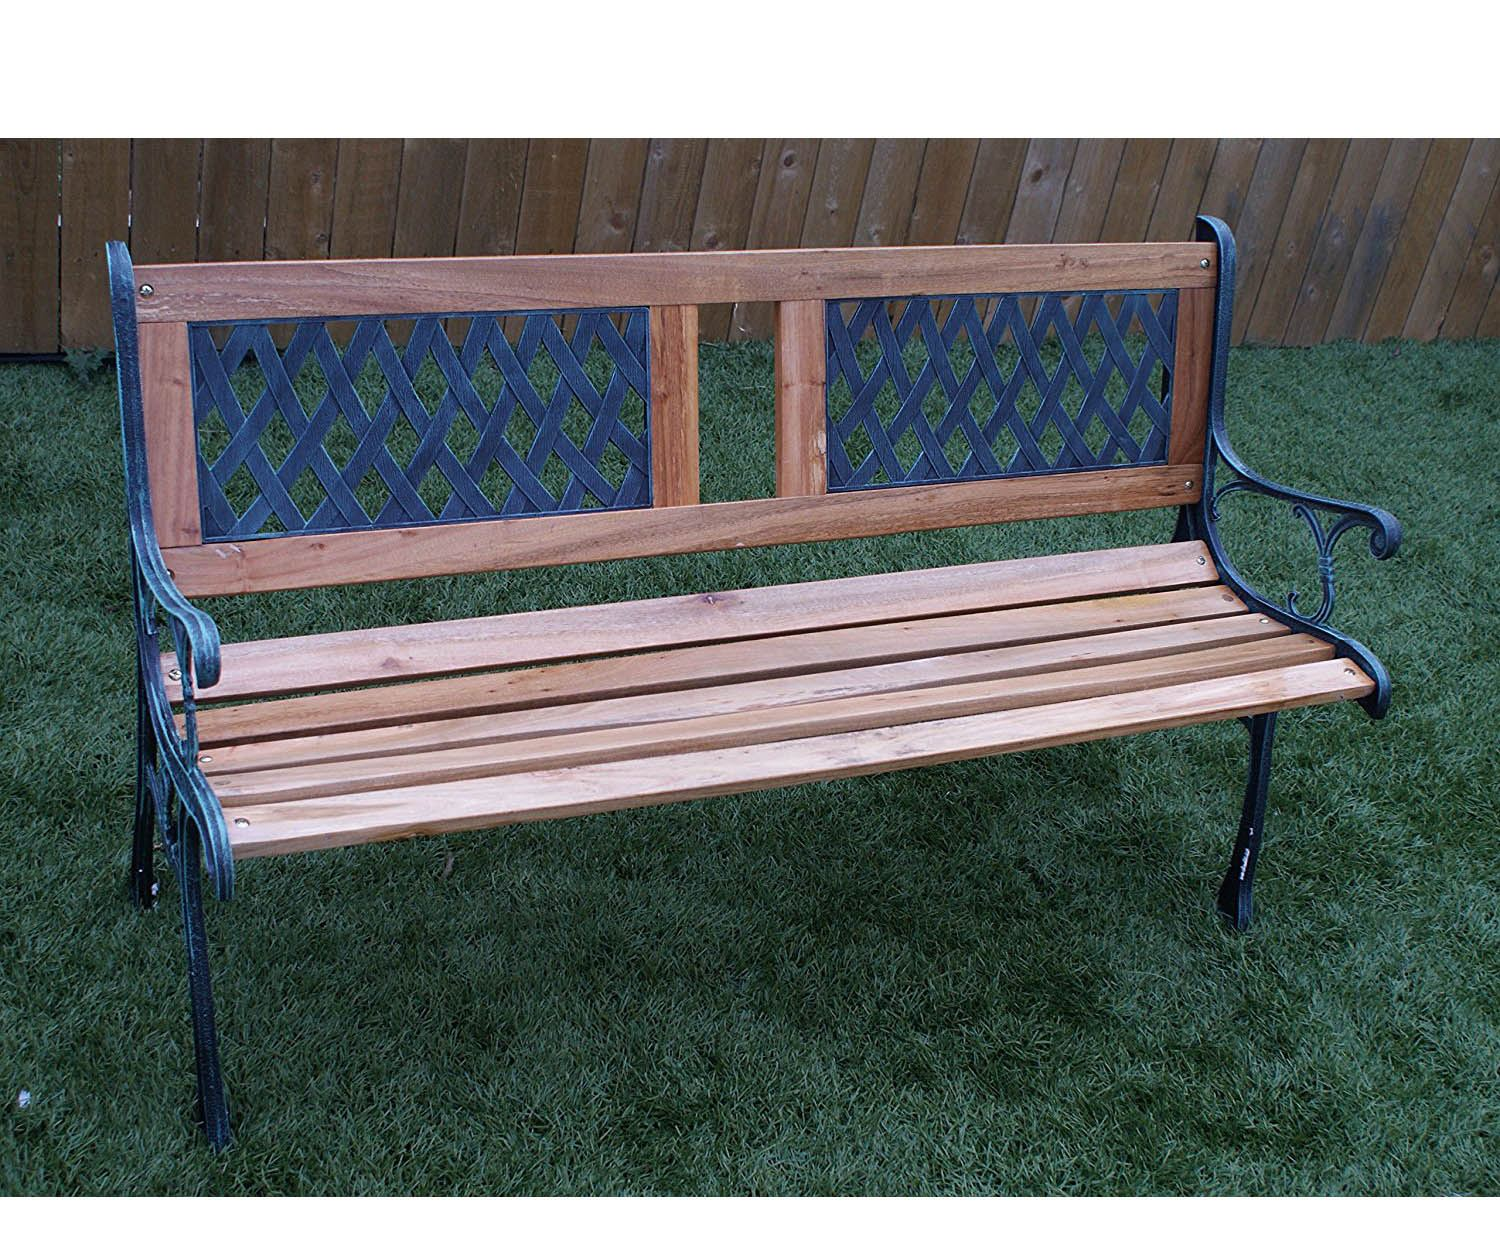 New 3 Seater Outdoor Home Wooden Garden Bench With Cast Iron Legs Seat Furniture Ebay